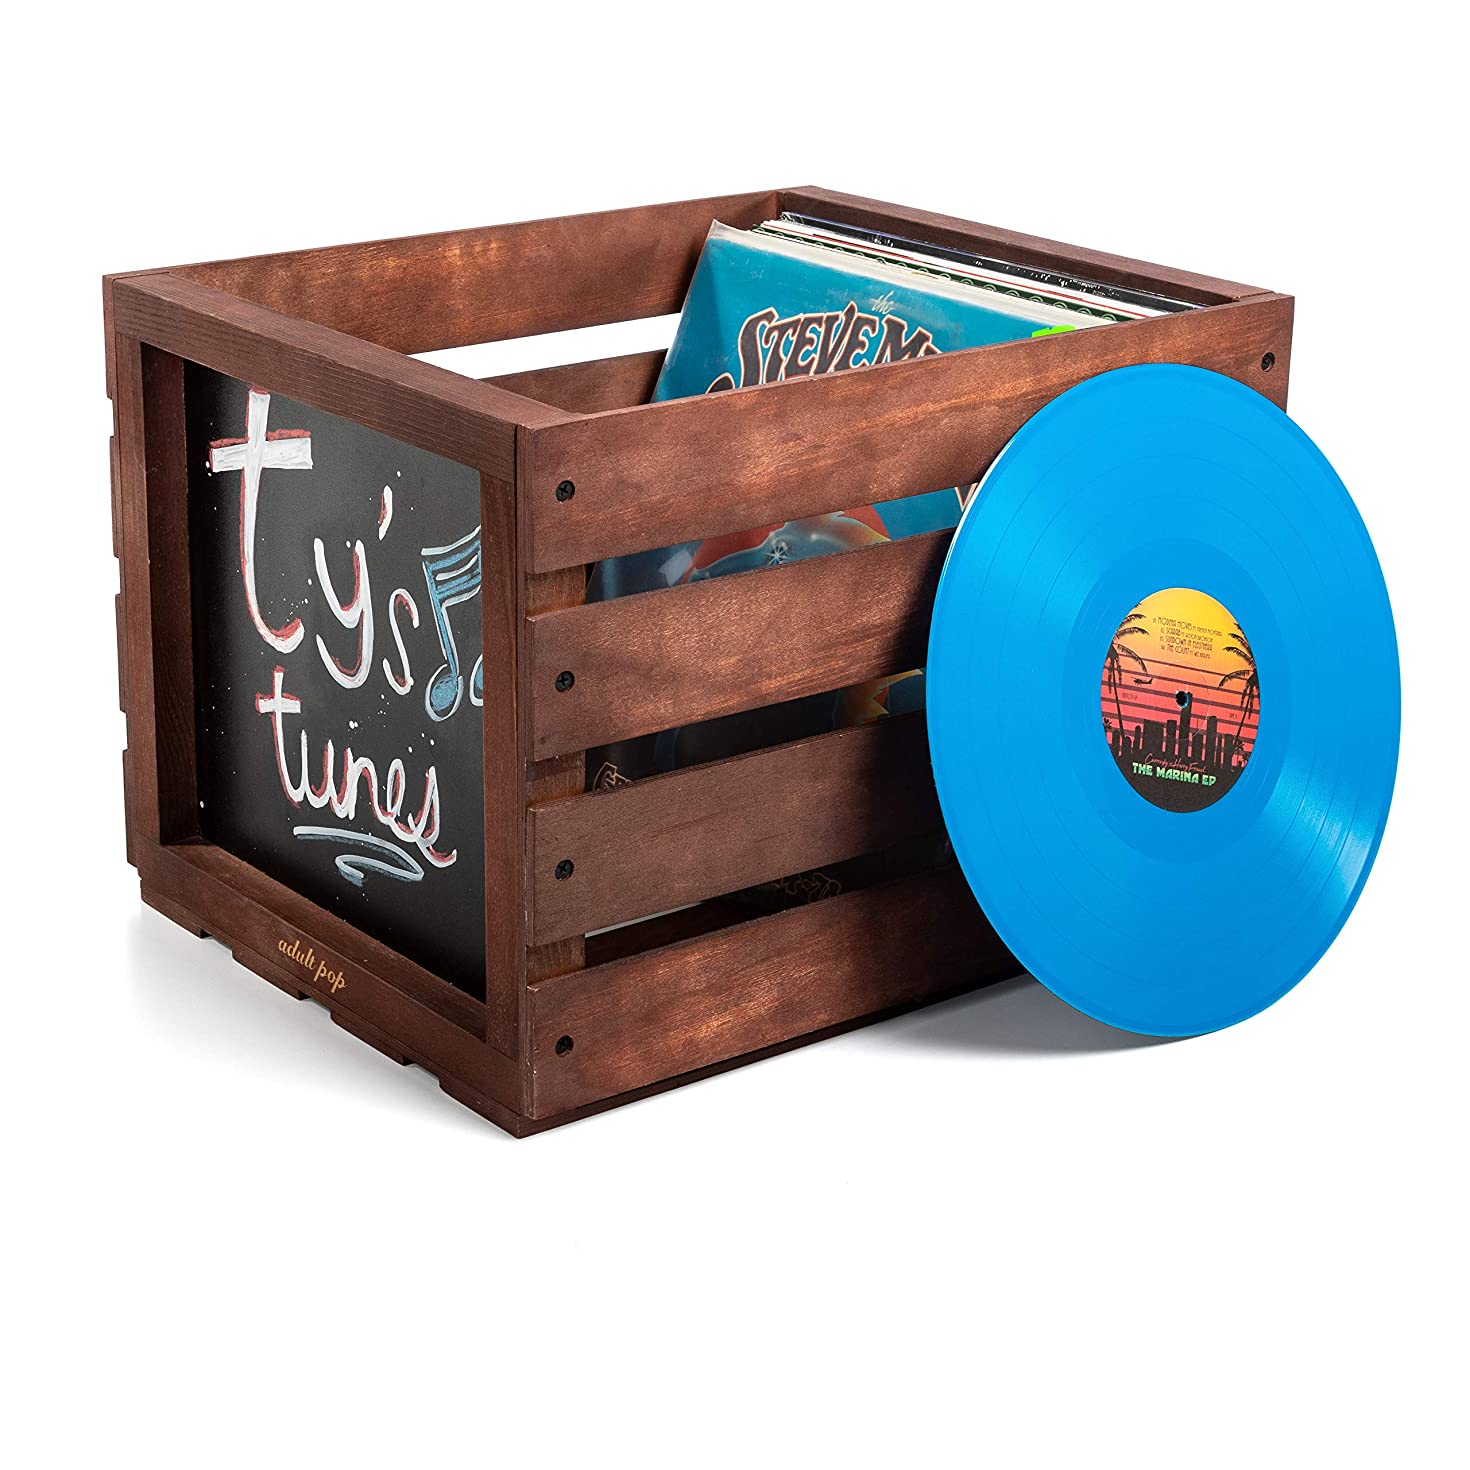 Chalkboard Vinyl Record Storage Wooden Crate - Chalk Pen & Dust Chalk Included - Wood Records Display Case - Perfect Album Organizer - by Adult Pop (Carrington)